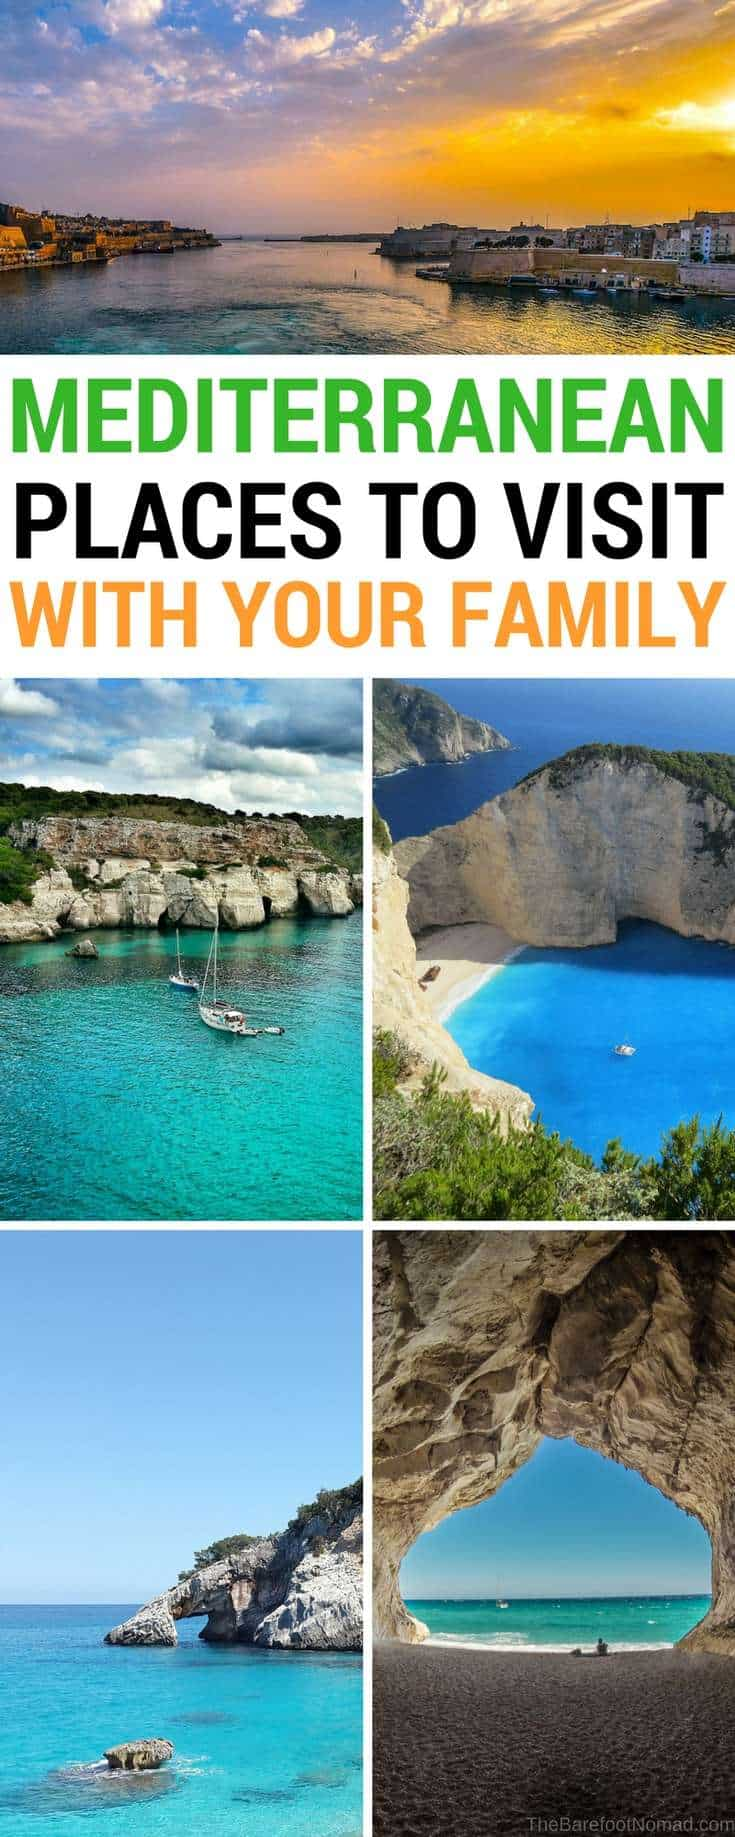 Mediterranean destinations to visit as a family